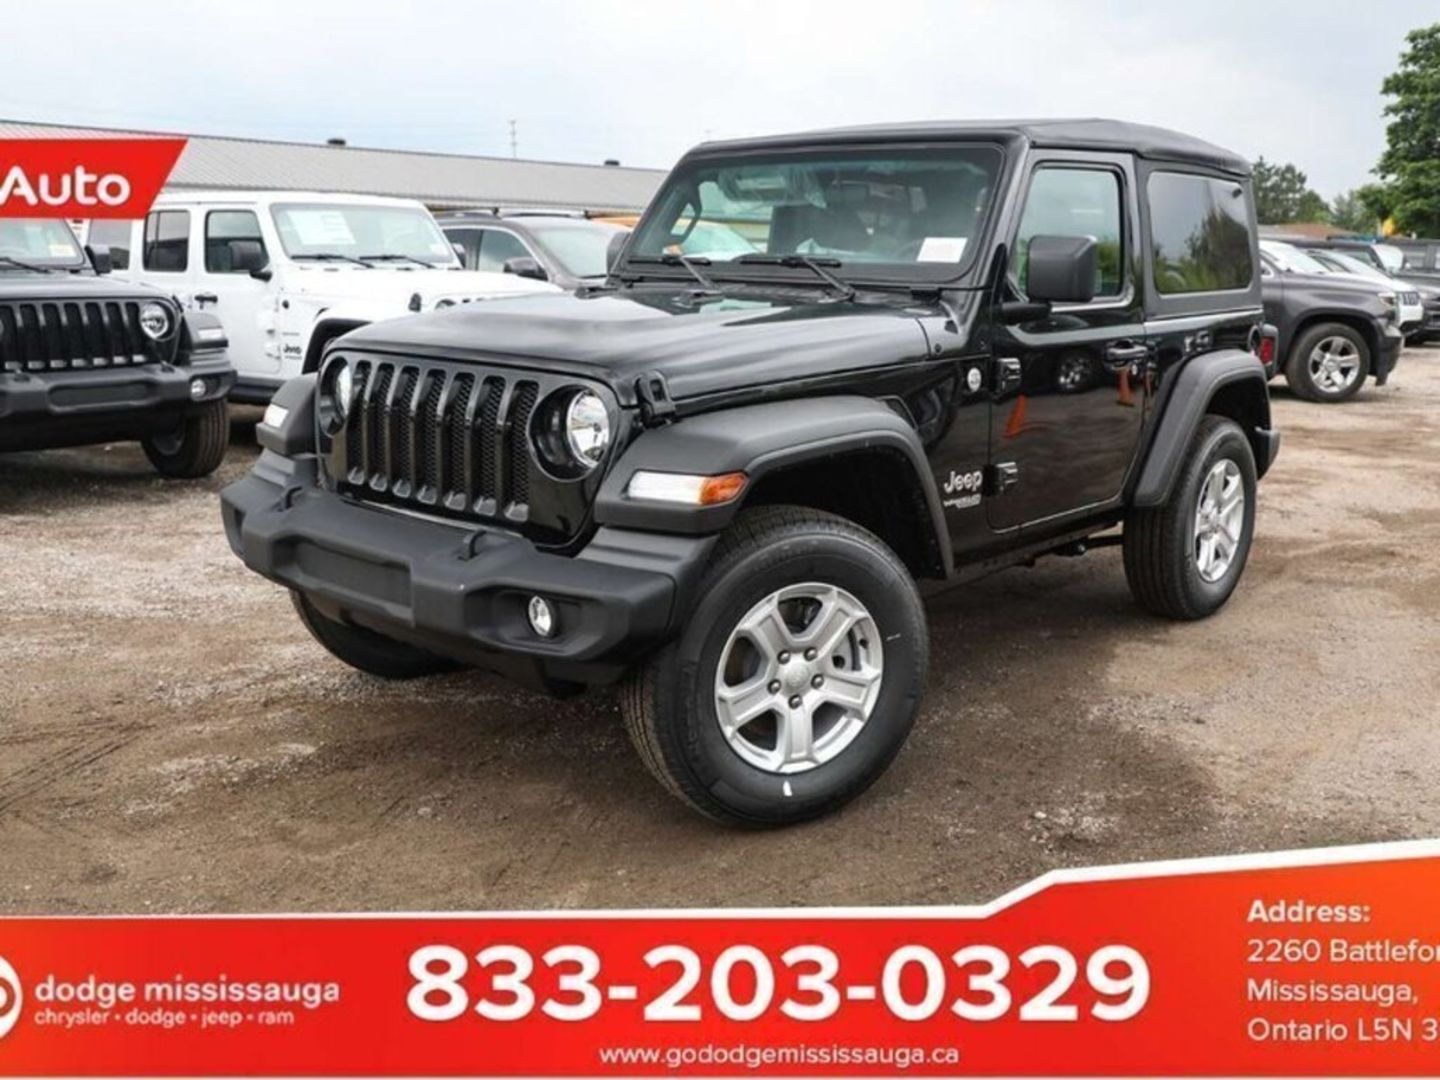 2019 Jeep Wrangler Sport S for sale in Mississauga, Ontario